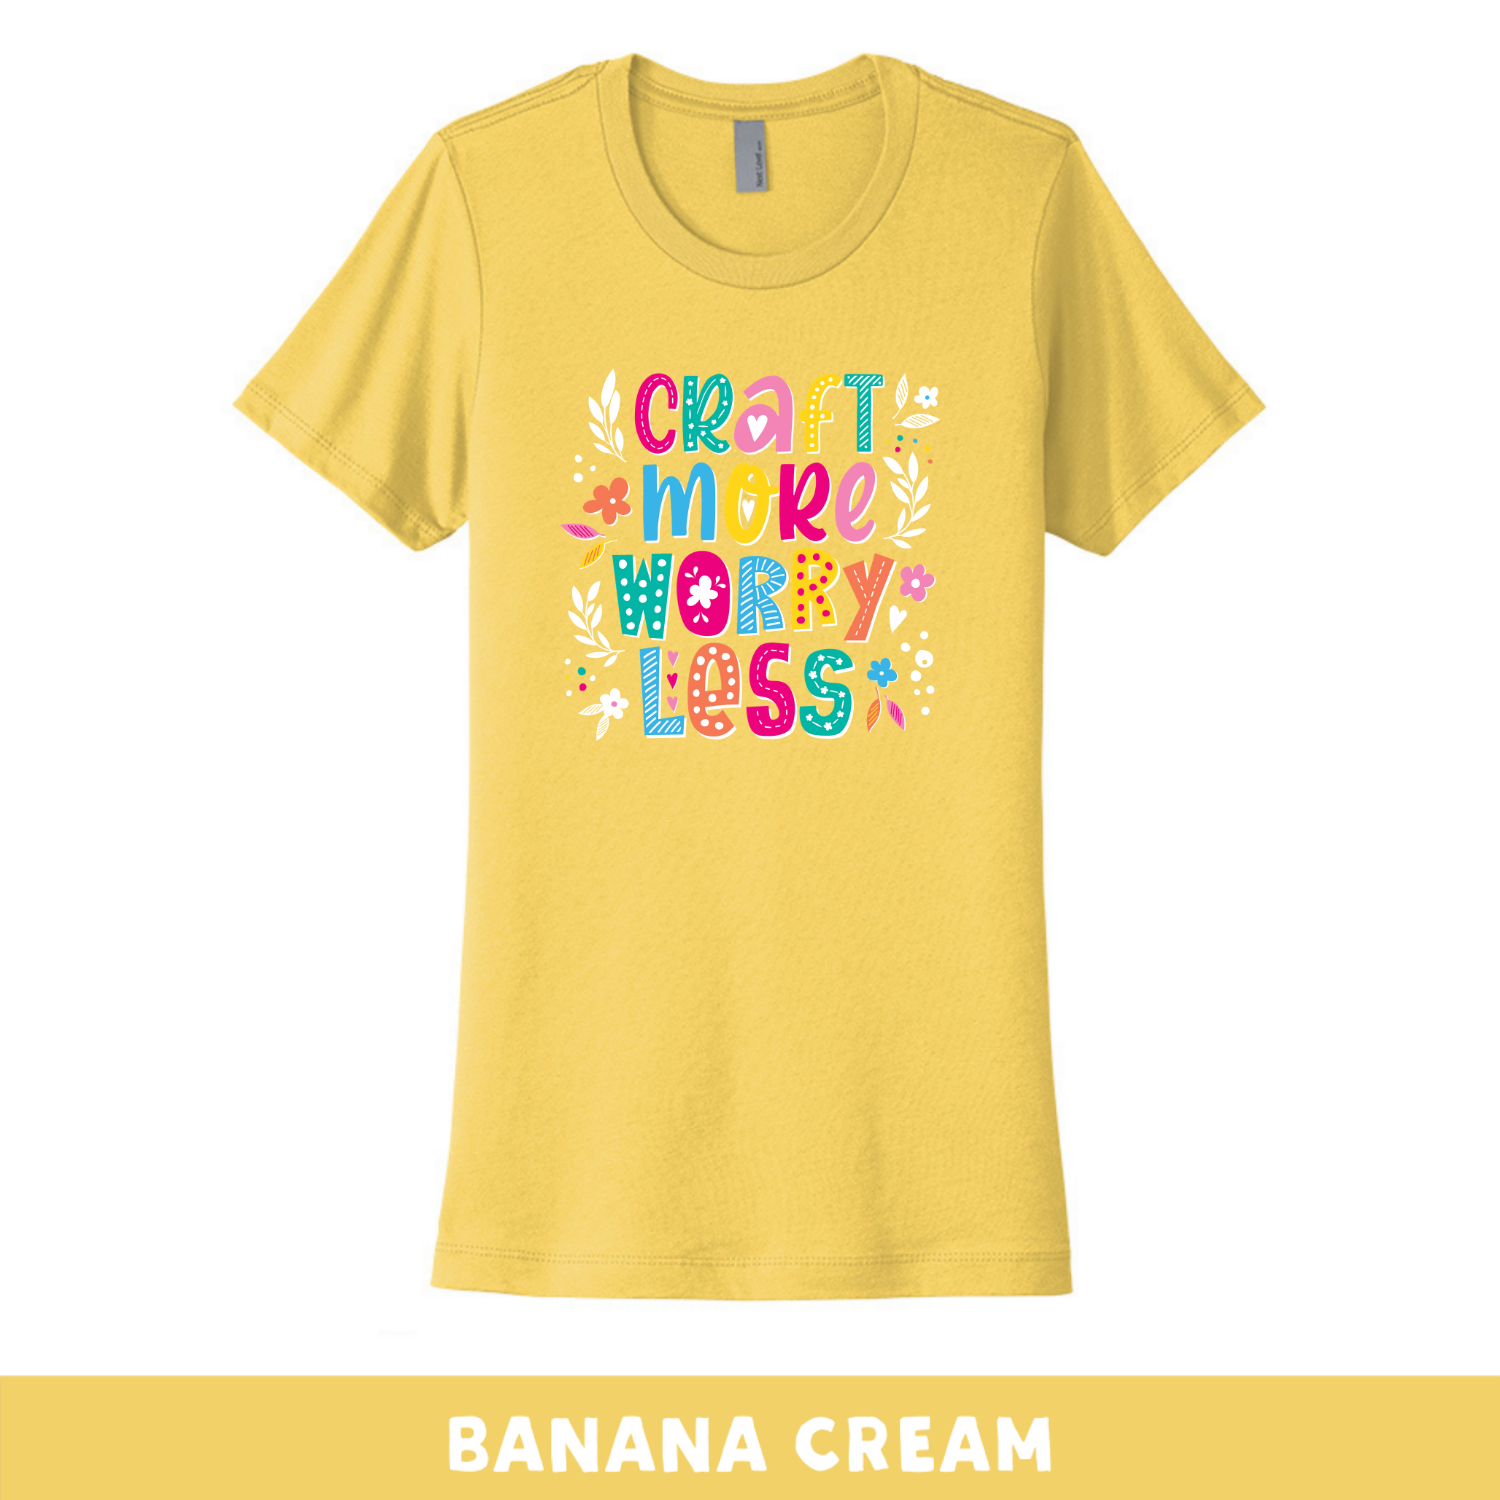 Banana Cream - Crew Neck Boyfriend Tee - Craft More Worry Less